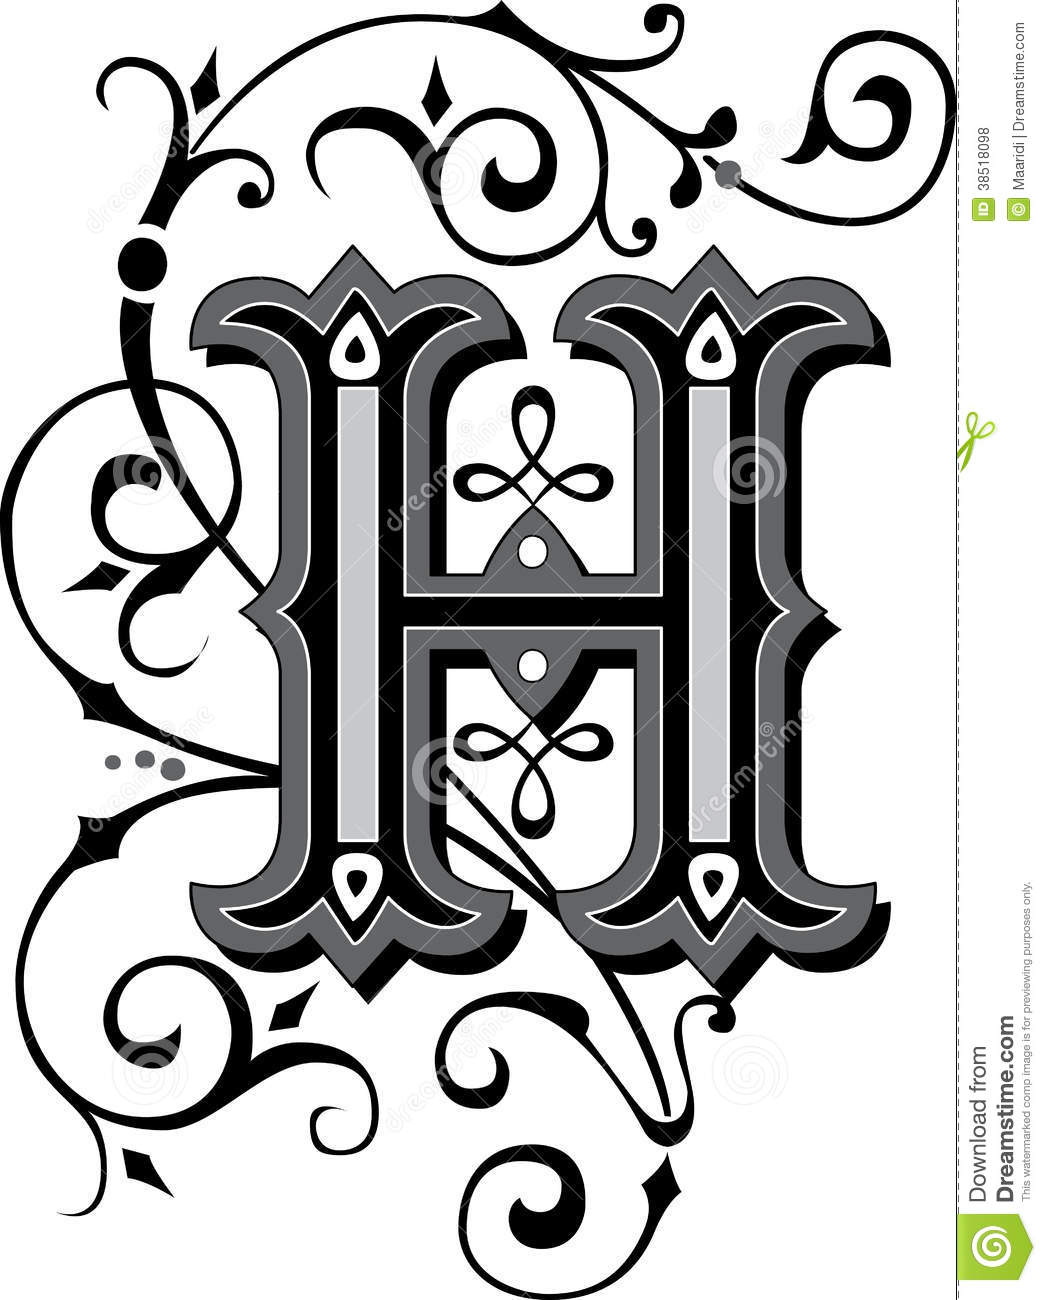 beautiful ornate alphabets letter s grayscale beautiful ornament letter h royalty free stock photos 939